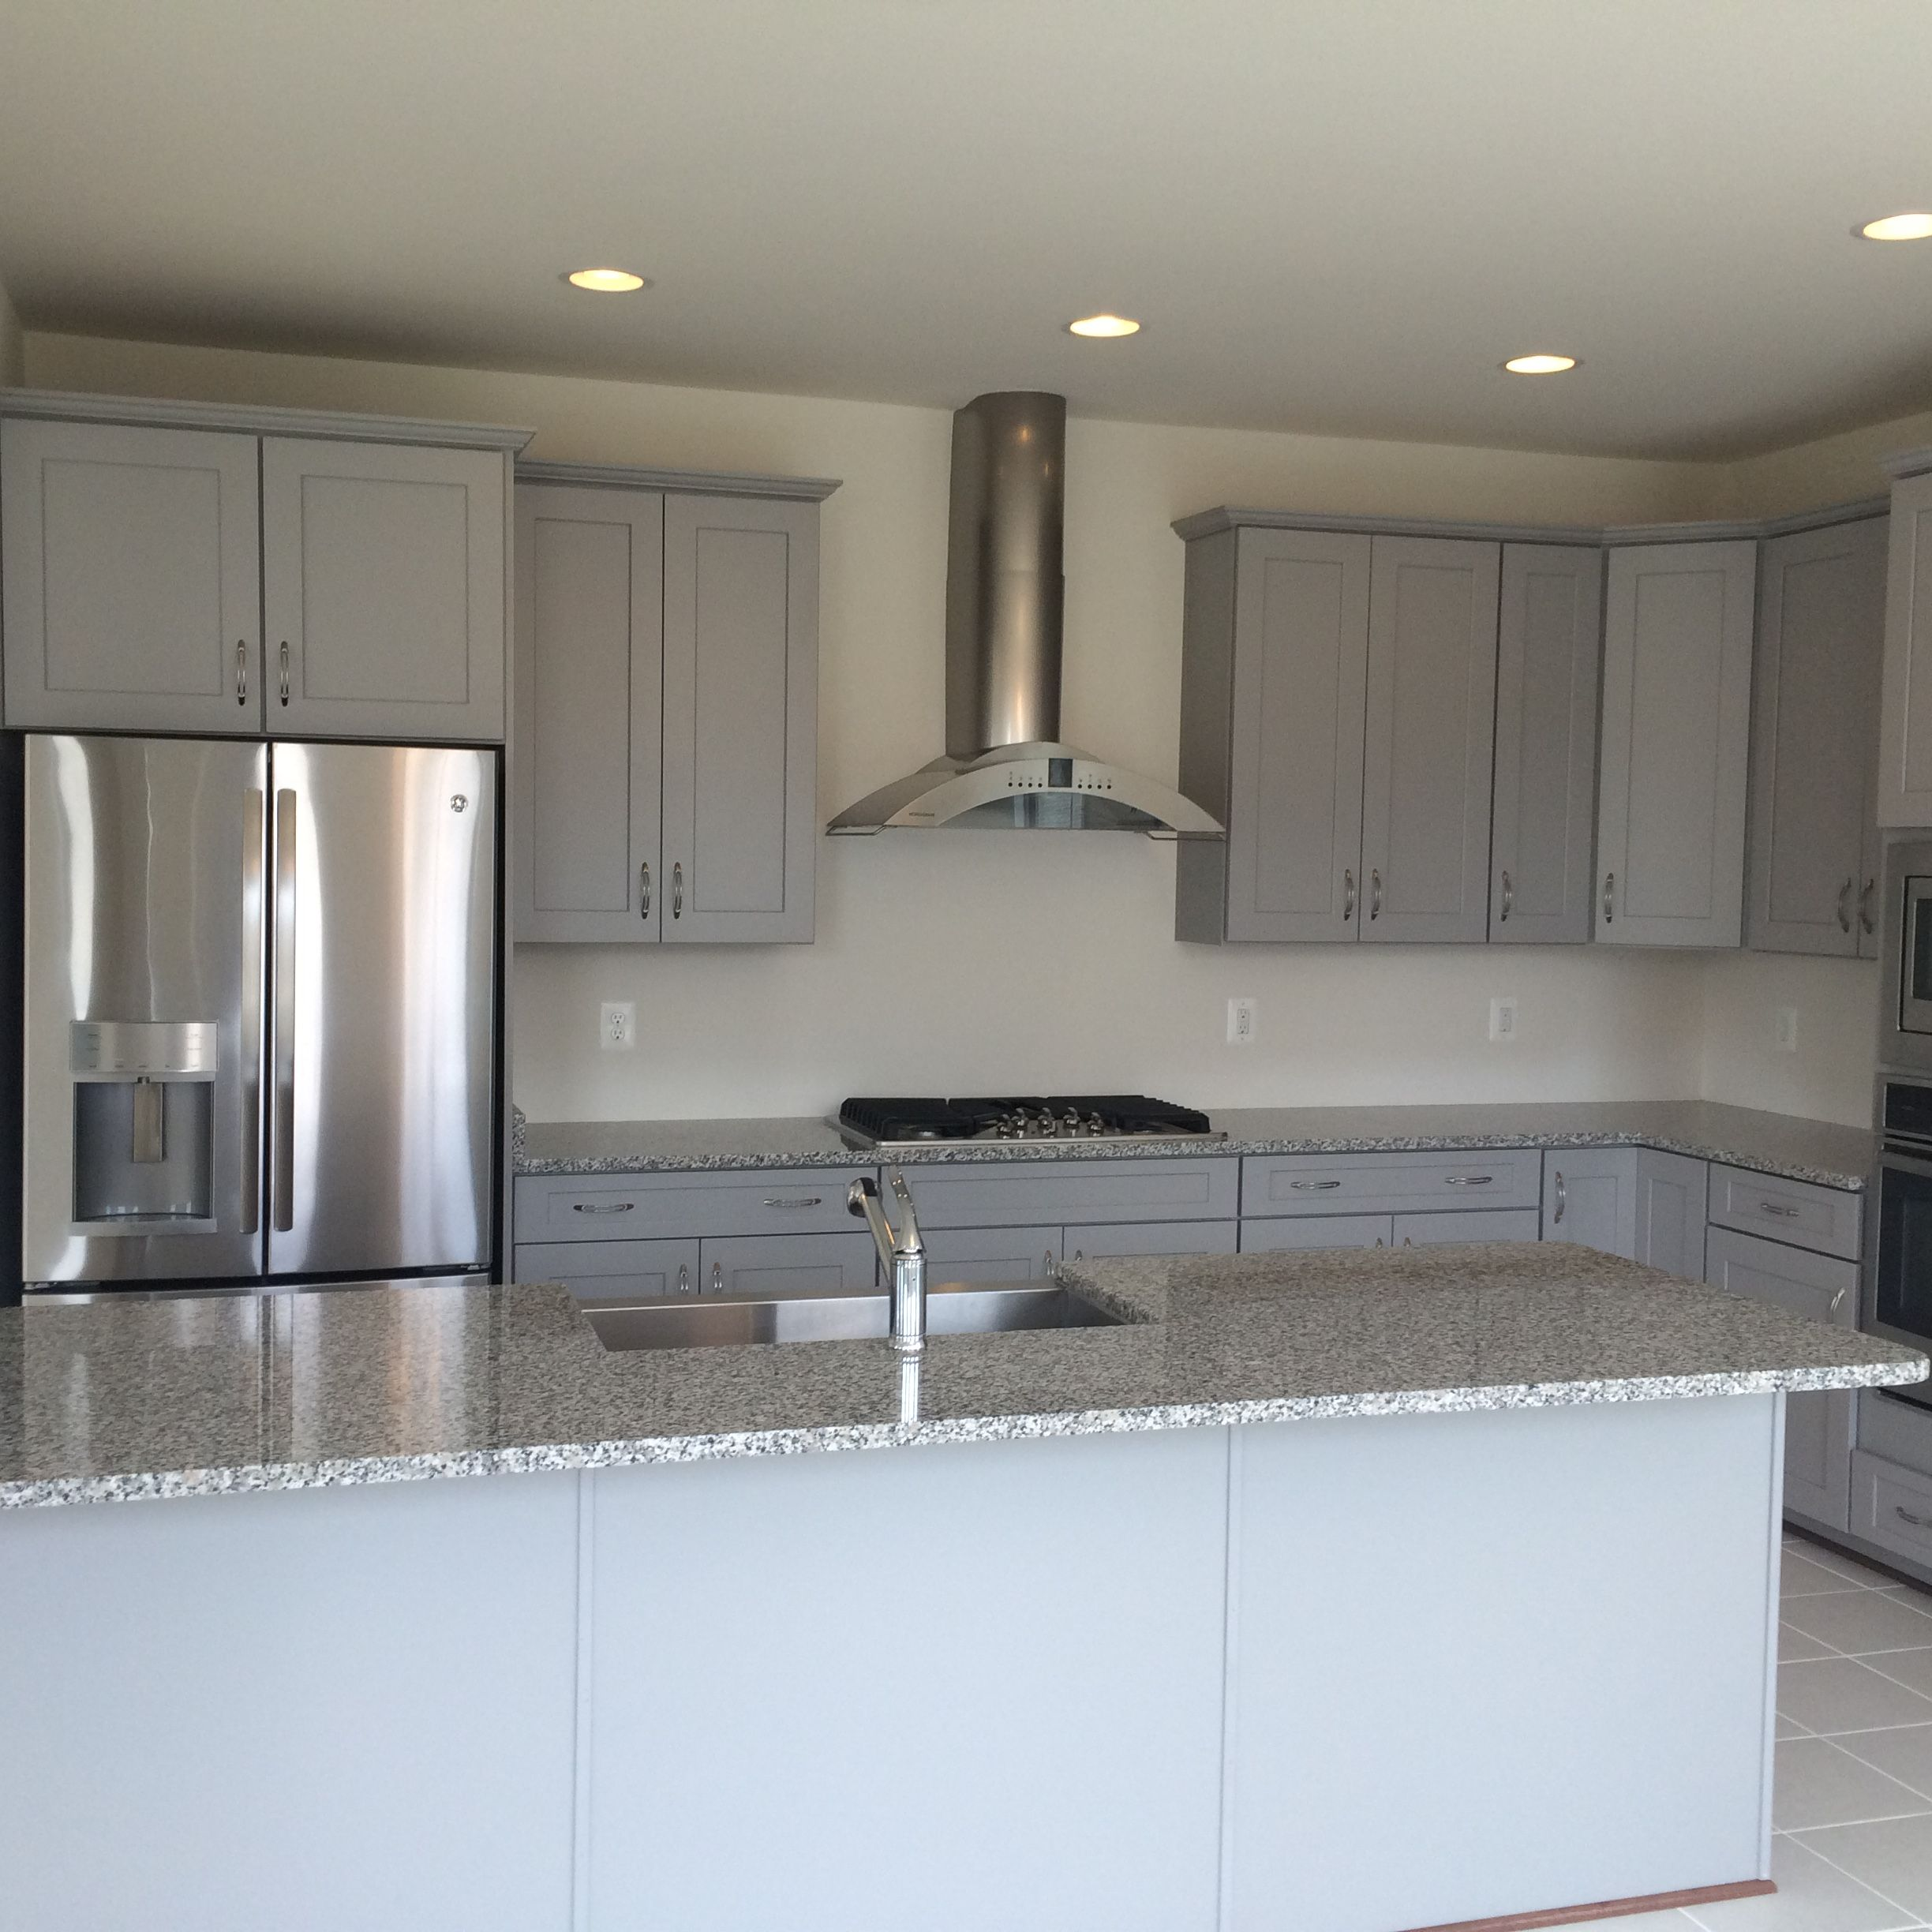 Level 7 Stone Cabinets Level 1 Luna Pearl Granite Counter